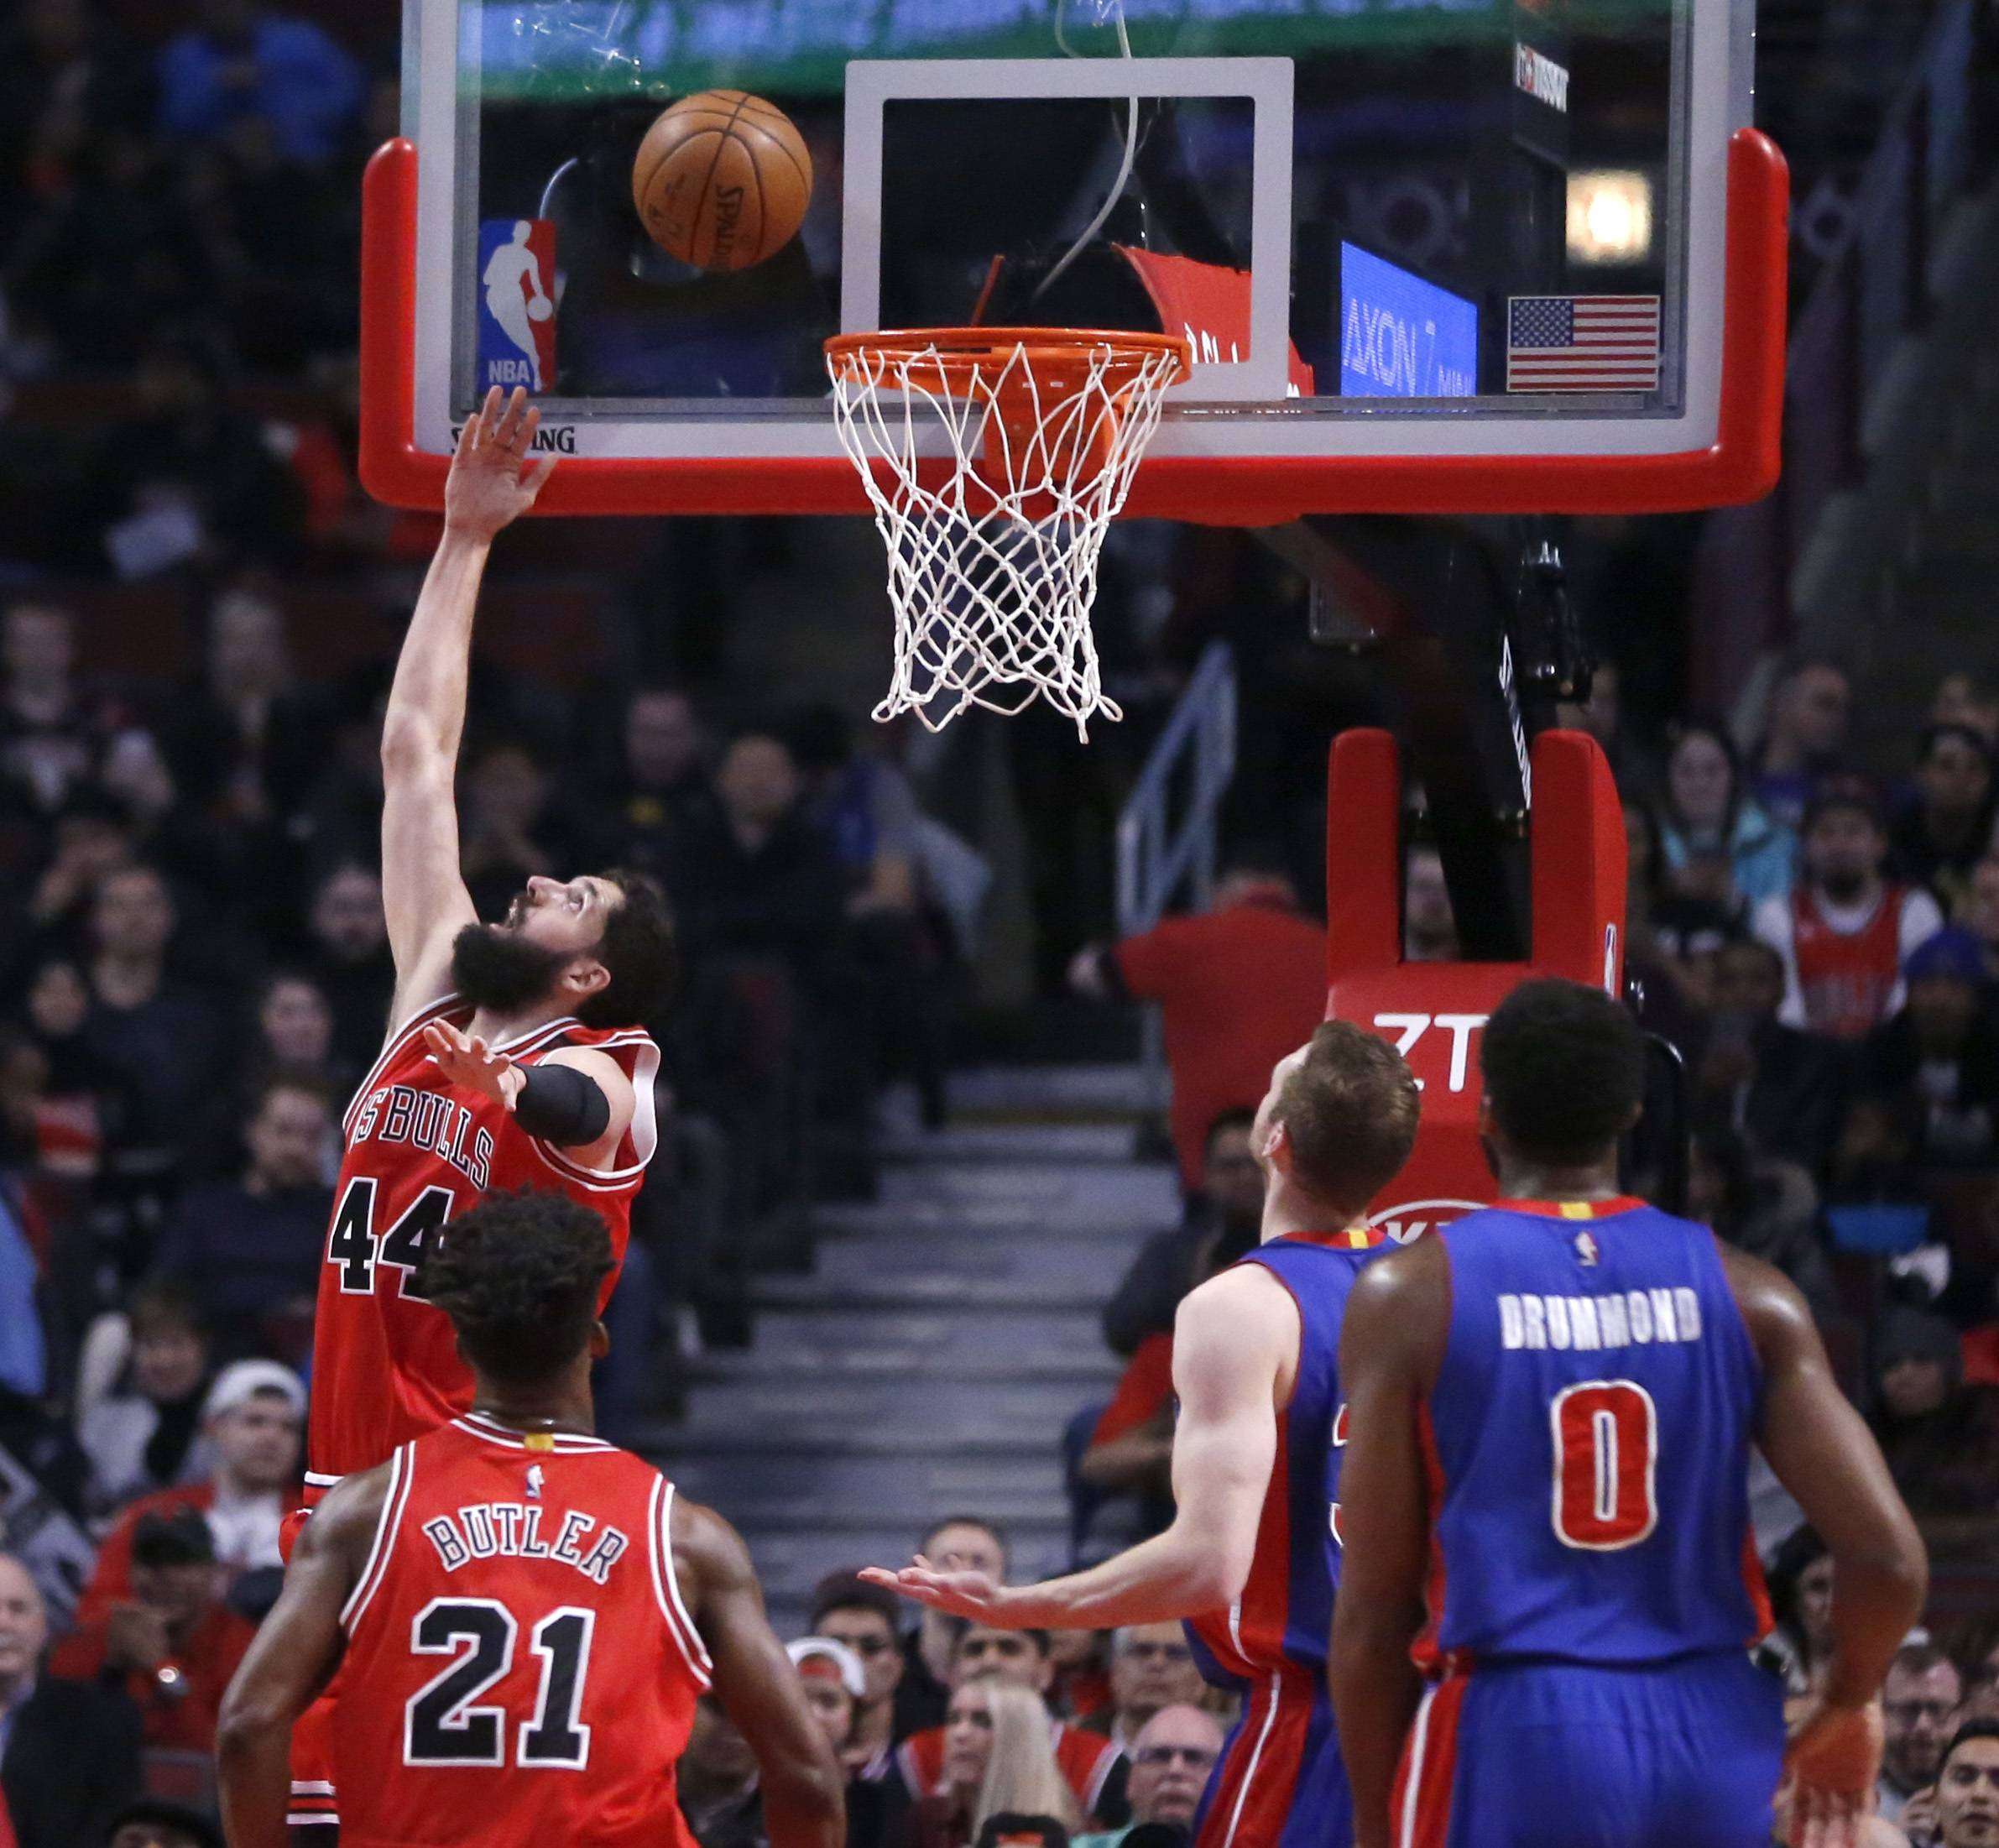 Mirotic scores season-high as Bulls roll past Pistons